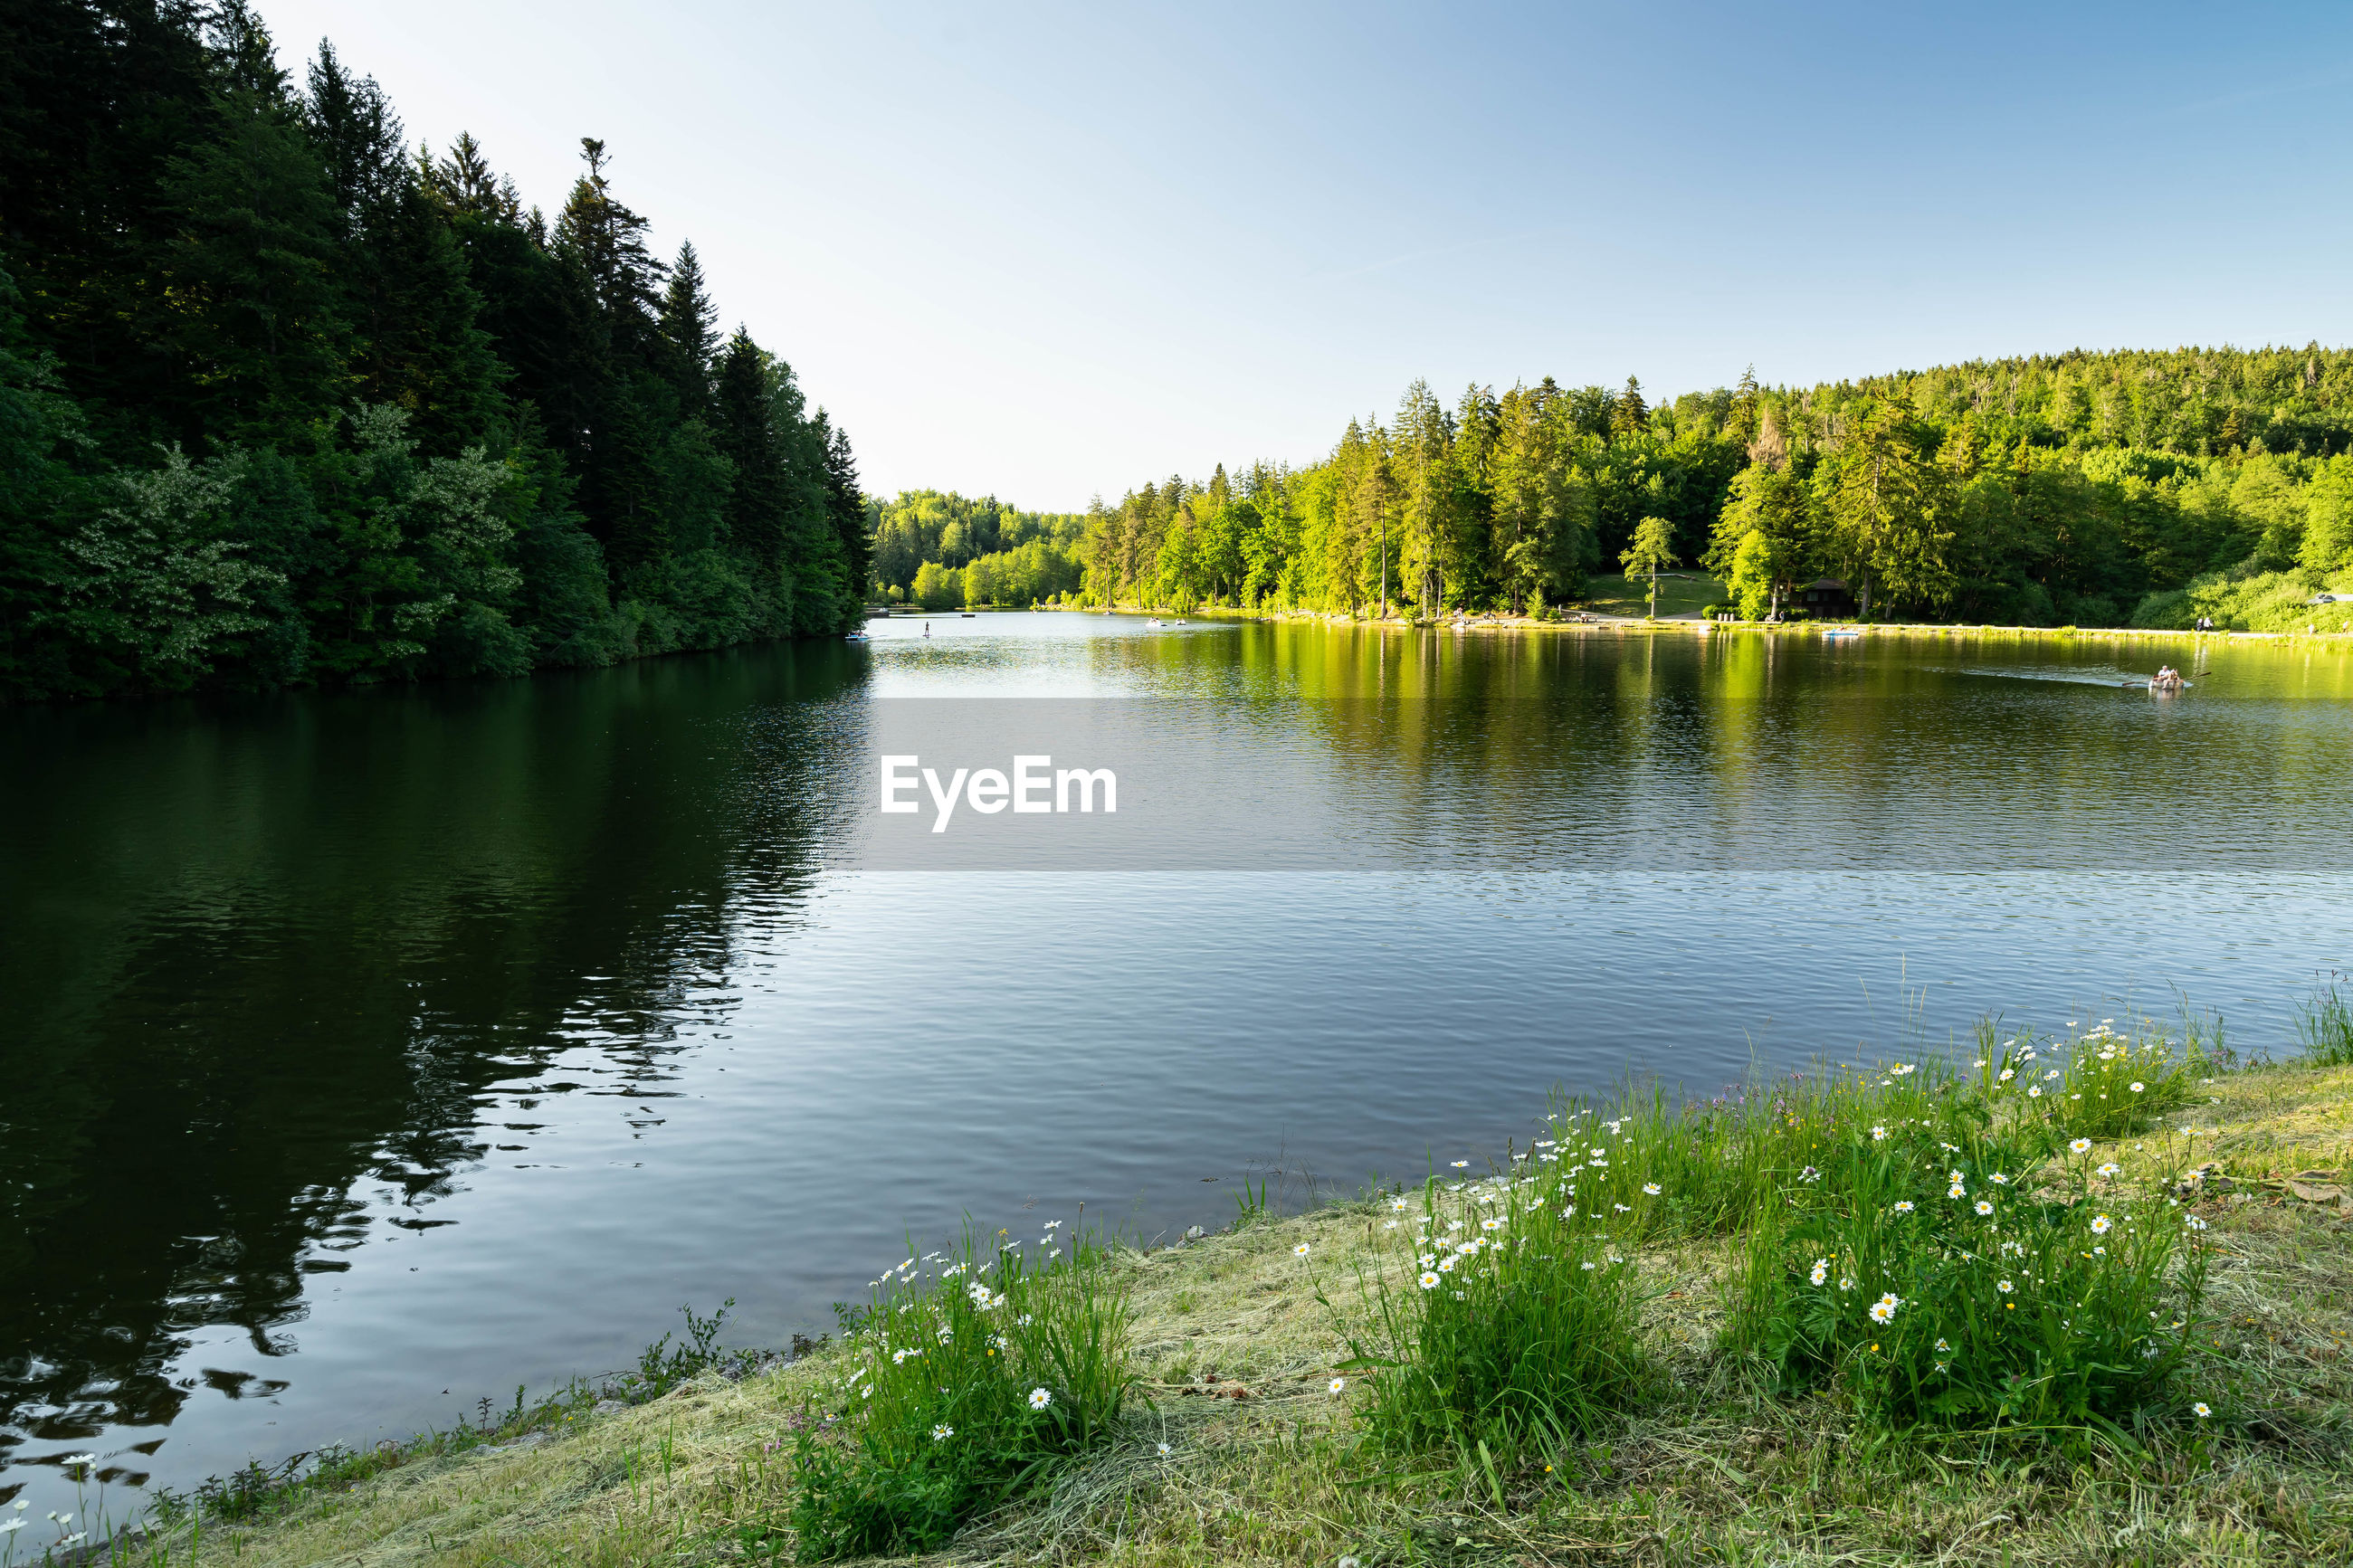 SCENIC VIEW OF LAKE AGAINST TREES AGAINST CLEAR SKY